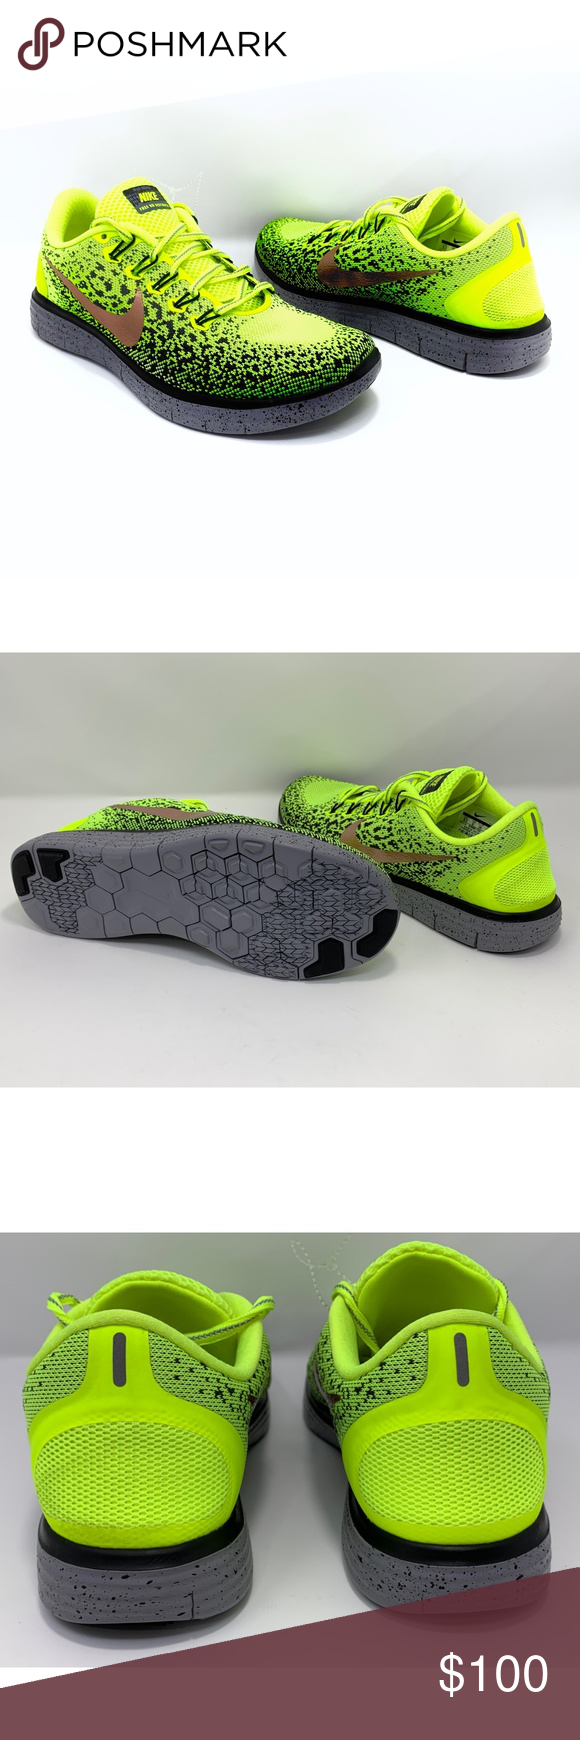 bd6219db6d6a Nike Free RN Distance Shield Men s Running Shoes NIKE Nike Free RN Distance  Shield 849660-700 Men s Running Shoes Size 6.5 Neon Green Low top New  without ...